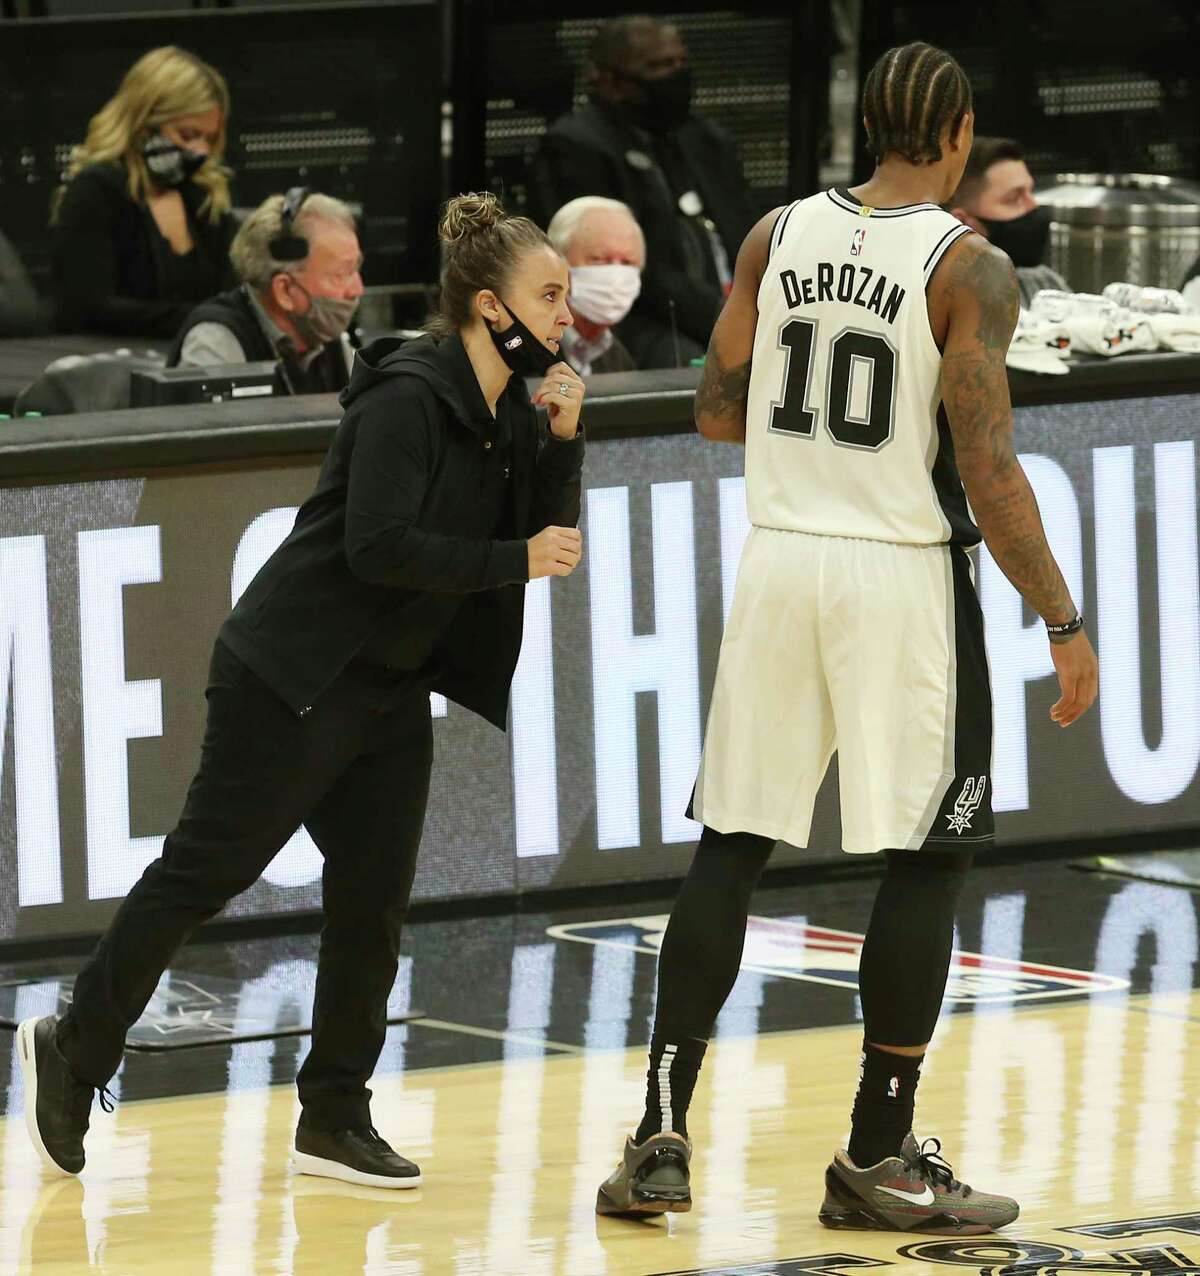 Assistant coach Becky Hammon talks to DeMar DeRozan (10) as she takes over coaching duties after Gregg Popovich was ejected in the first half of the game against the Los Angeles Lakers at the AT&T Center on Wednesday, Dec. 30, 2020.